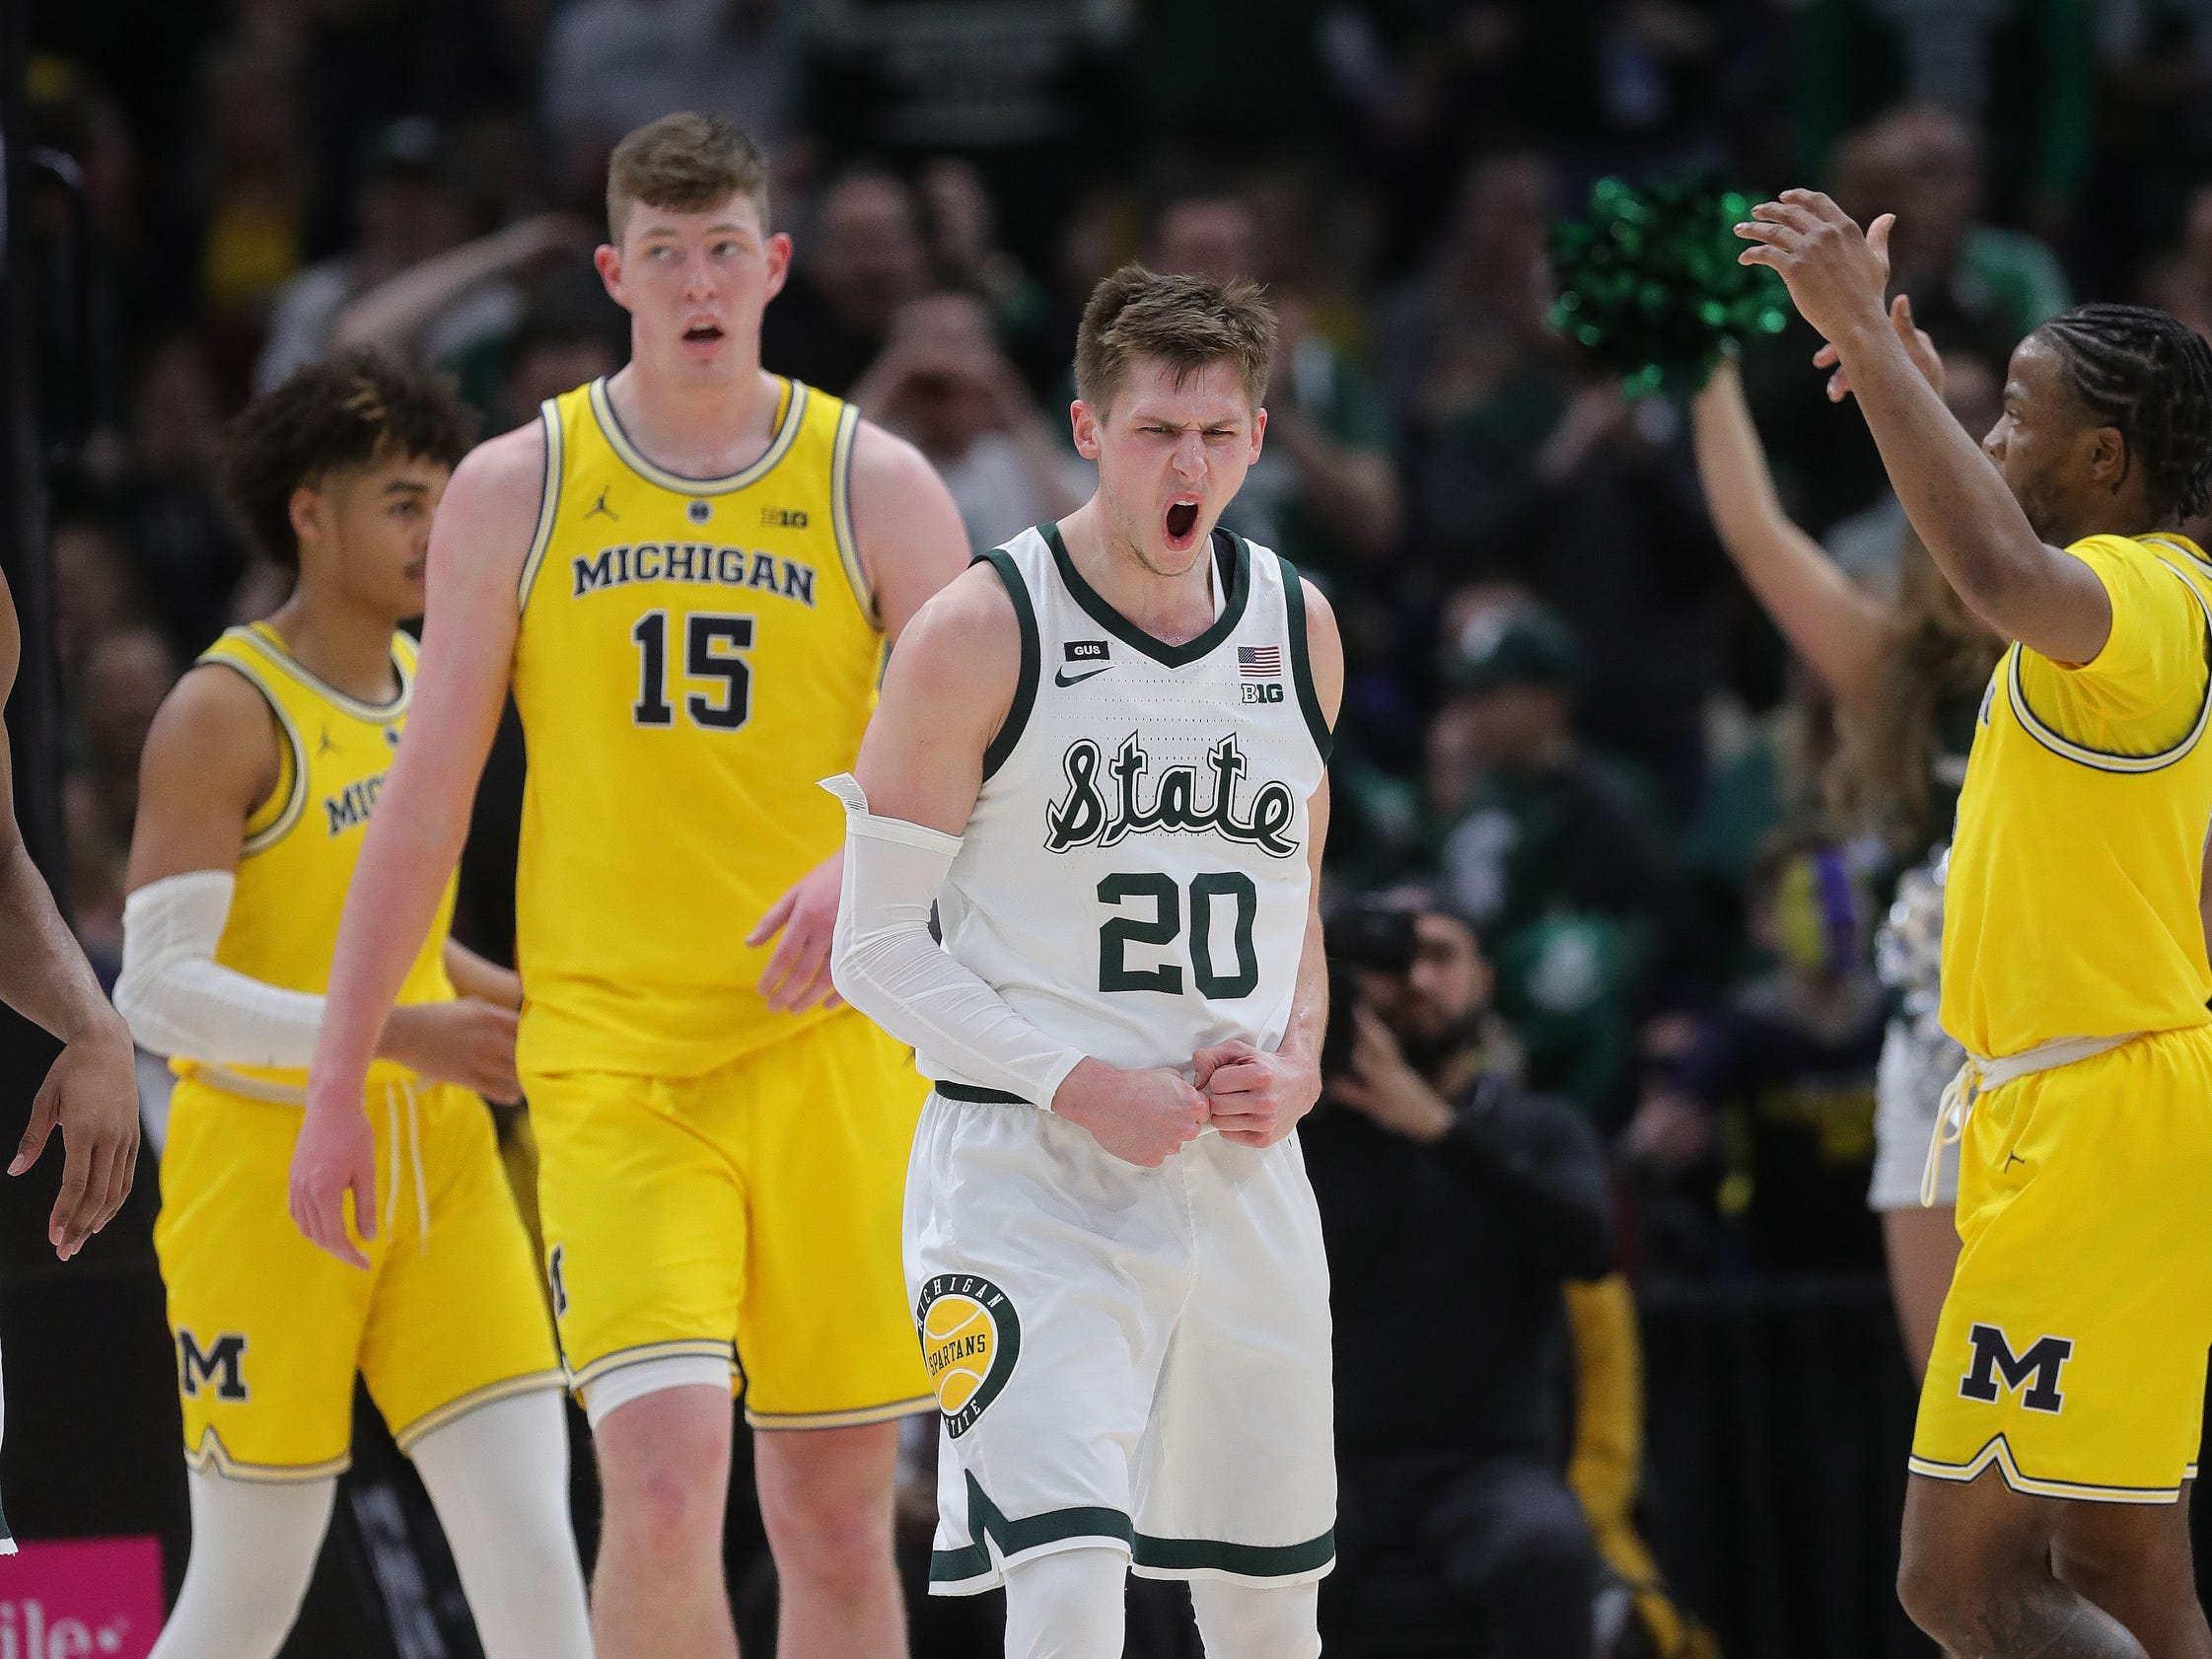 Michigan State guard Matt McQuaid celebrates after a basket against Michigan during second half of the Big Ten tournament championship Sunday, March 17, 2019 at the United Center in Chicago.